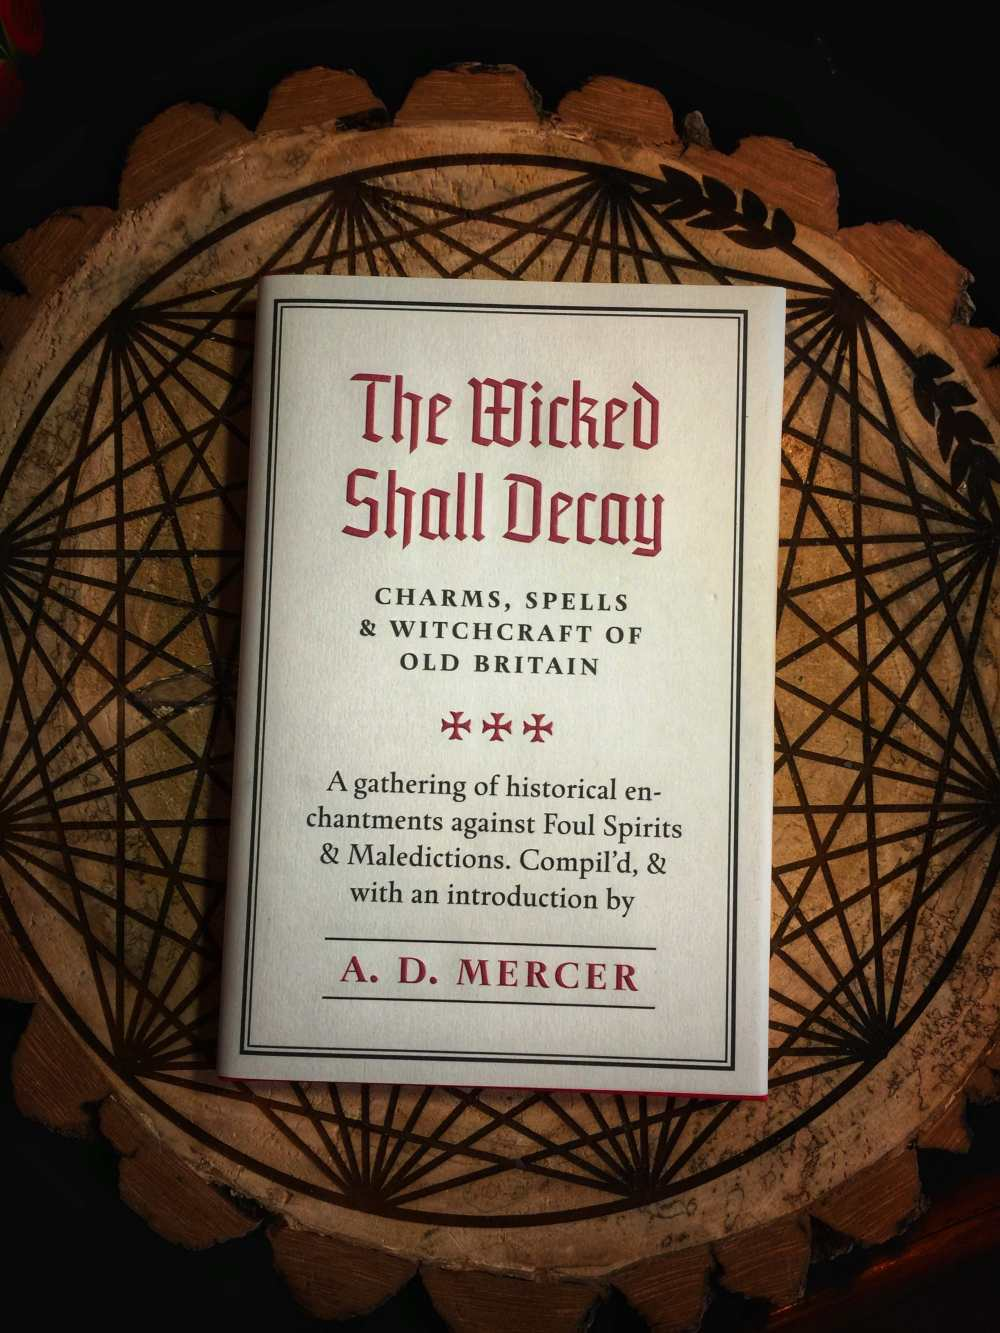 The Wicked Shall Decay